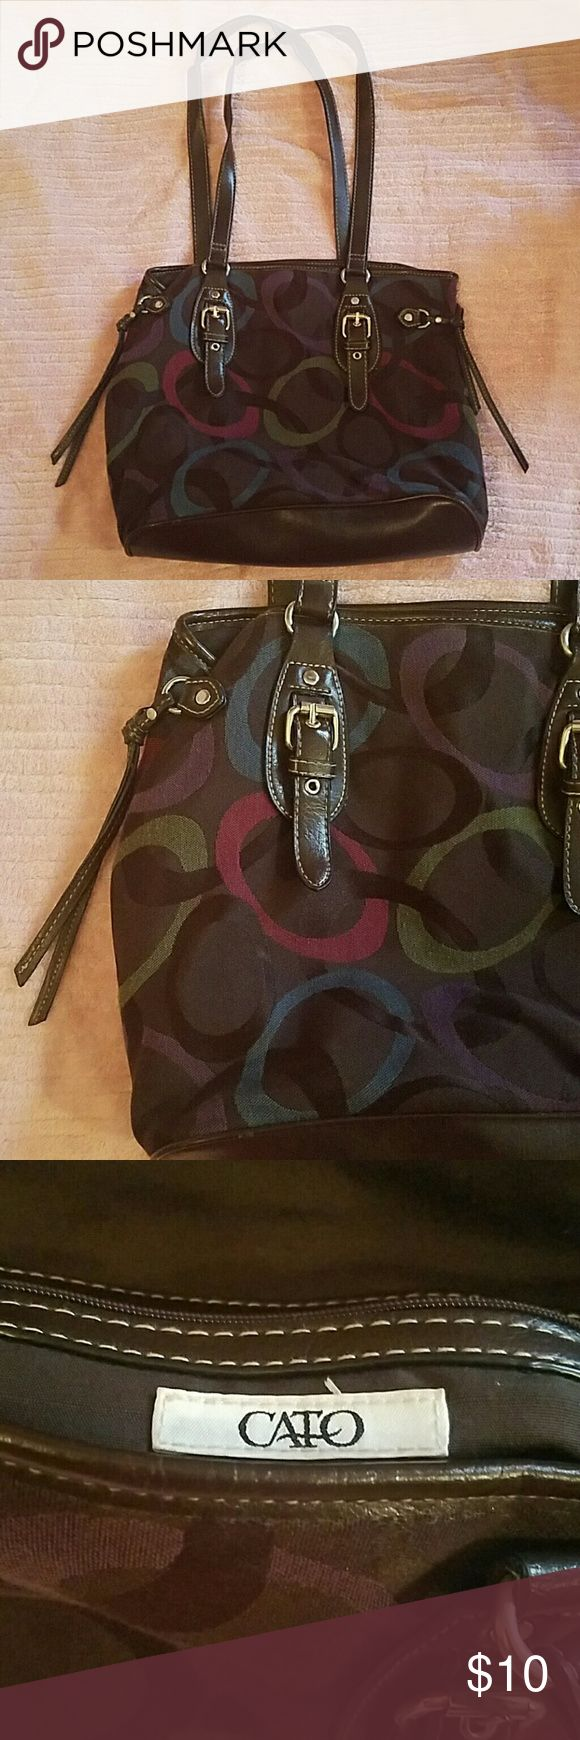 """CATO Bag Brown CATO bag with green, purple, maroon, blue and dark brown pattern on the outside trimmed in dark brown vinyl trim with a magnetic button inside to close. Gently used, like NEW. Dimensions: 10"""" H x 13"""" L x 5"""" W  Feel free to make an offer or ask any questions! Cato Bags Shoulder Bags"""